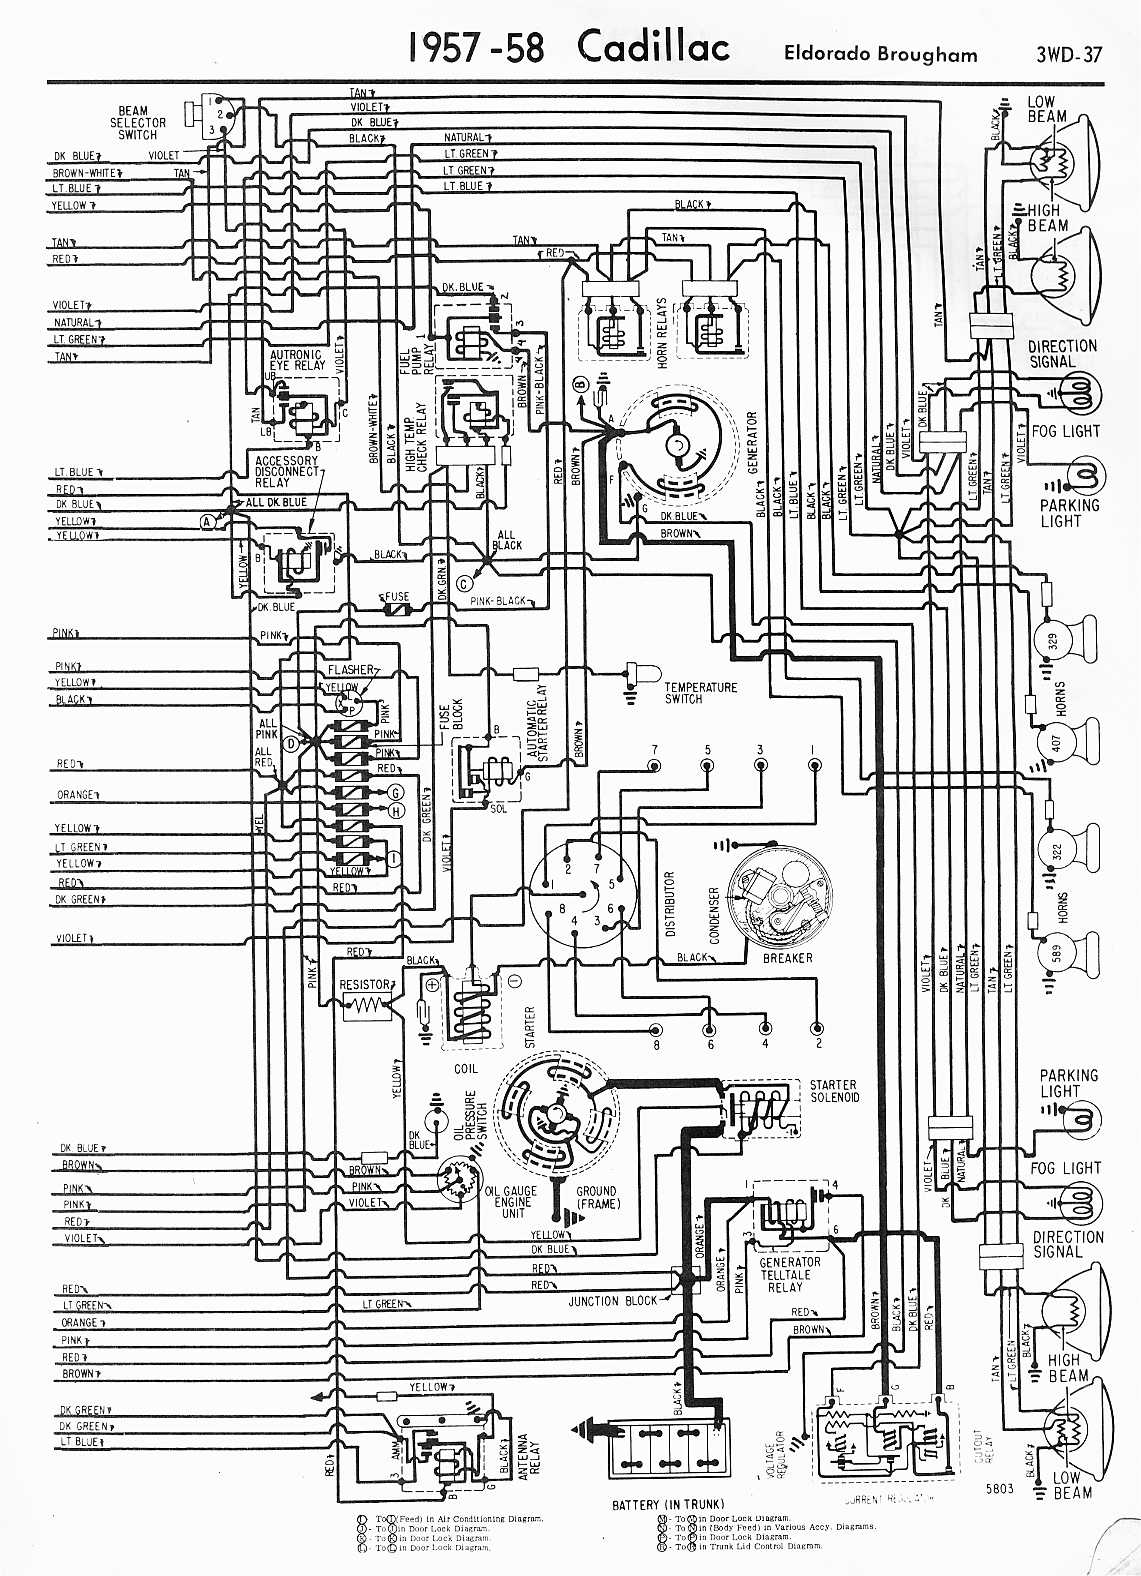 Cadillac Wiring Diagrams 1957 1965 Diagram Further Wall Heater Get Free Image About 58 Eldorado Brougham Right